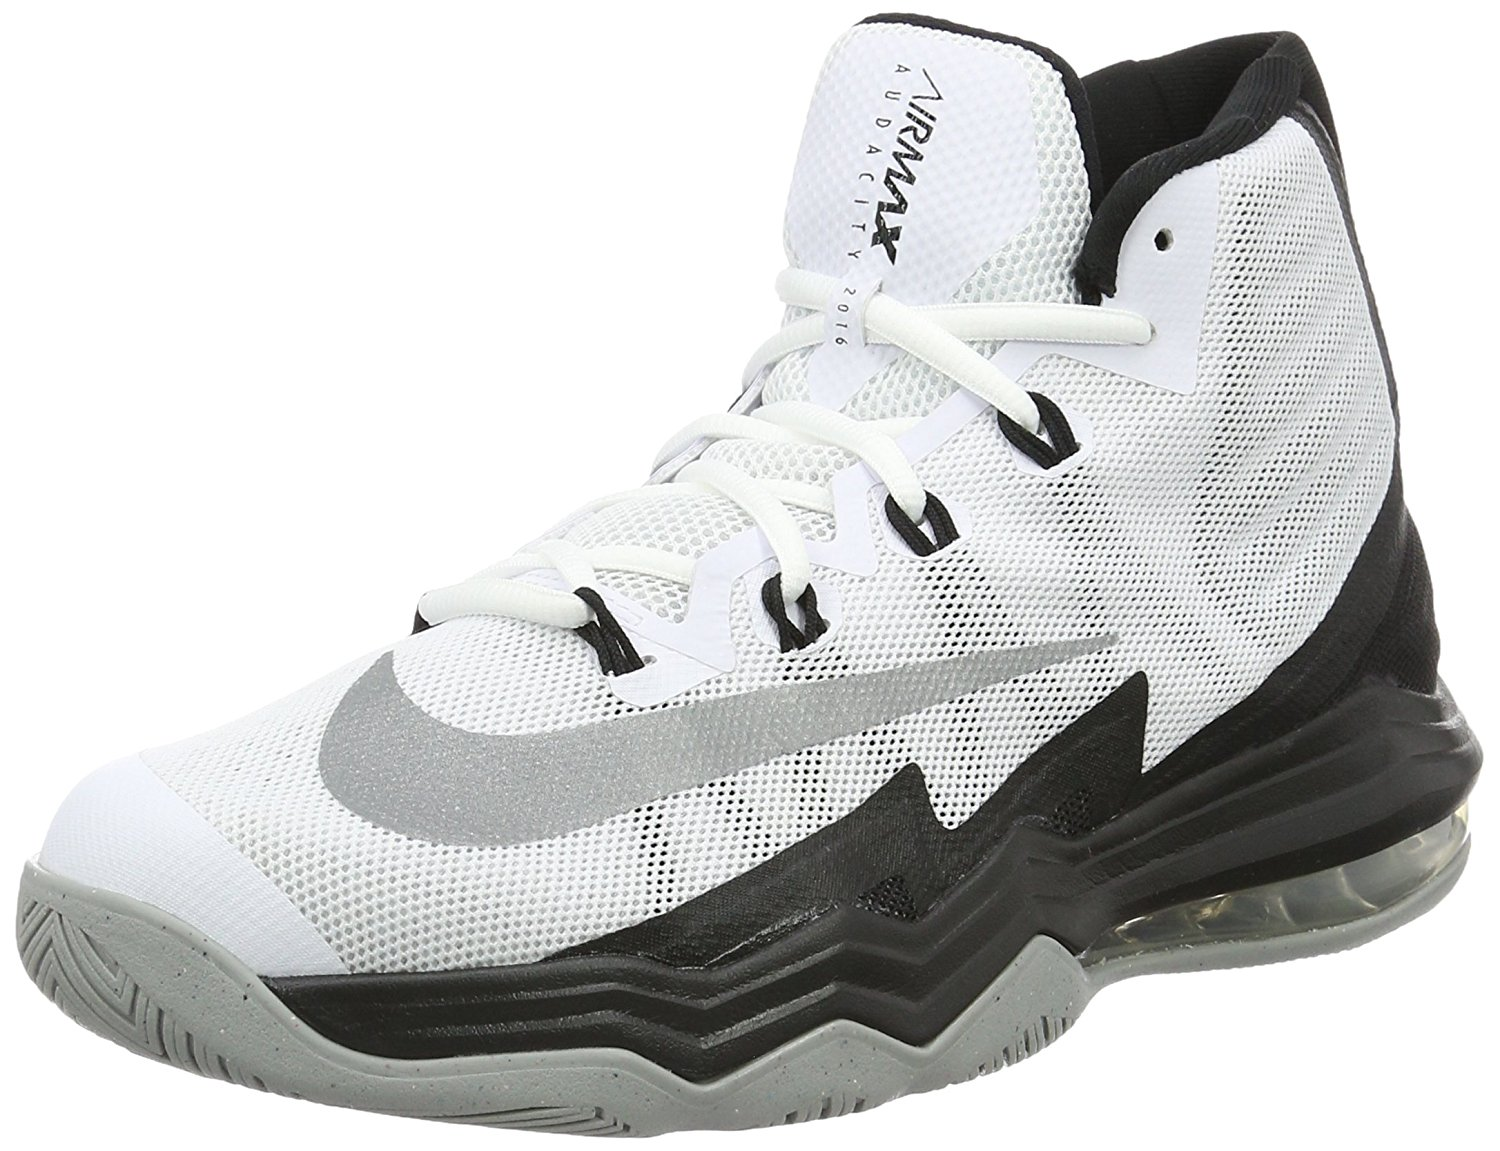 f88df1389253 Get Quotations · Nike Men s Air Max Audacity 2016 Basketball Shoe White Reflect  Silver-Black-Wolf